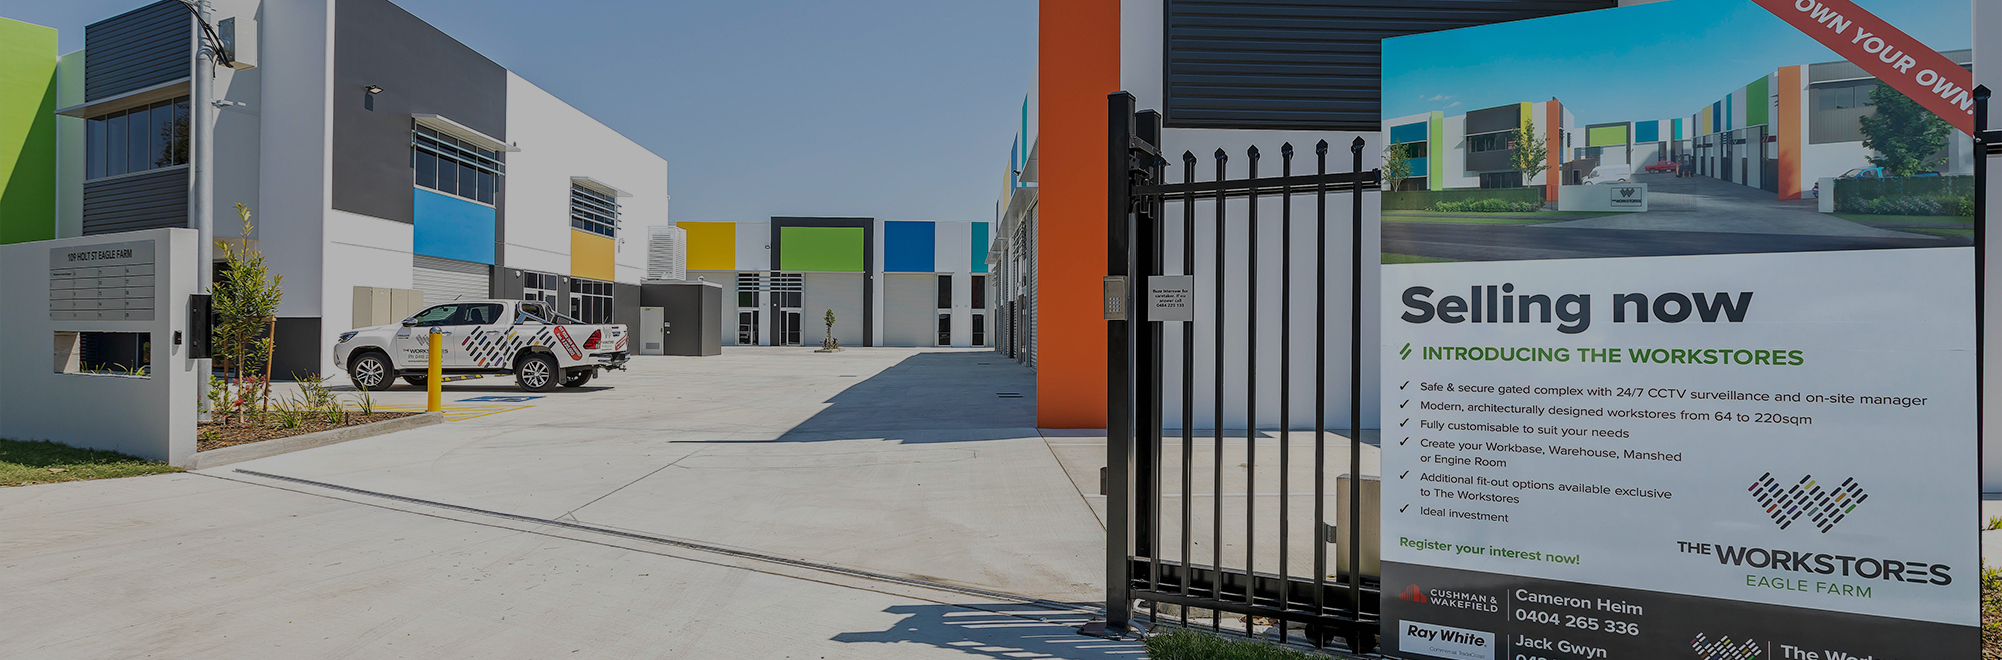 The Workstores Eagle Farm - Premium Storage Units For Sale